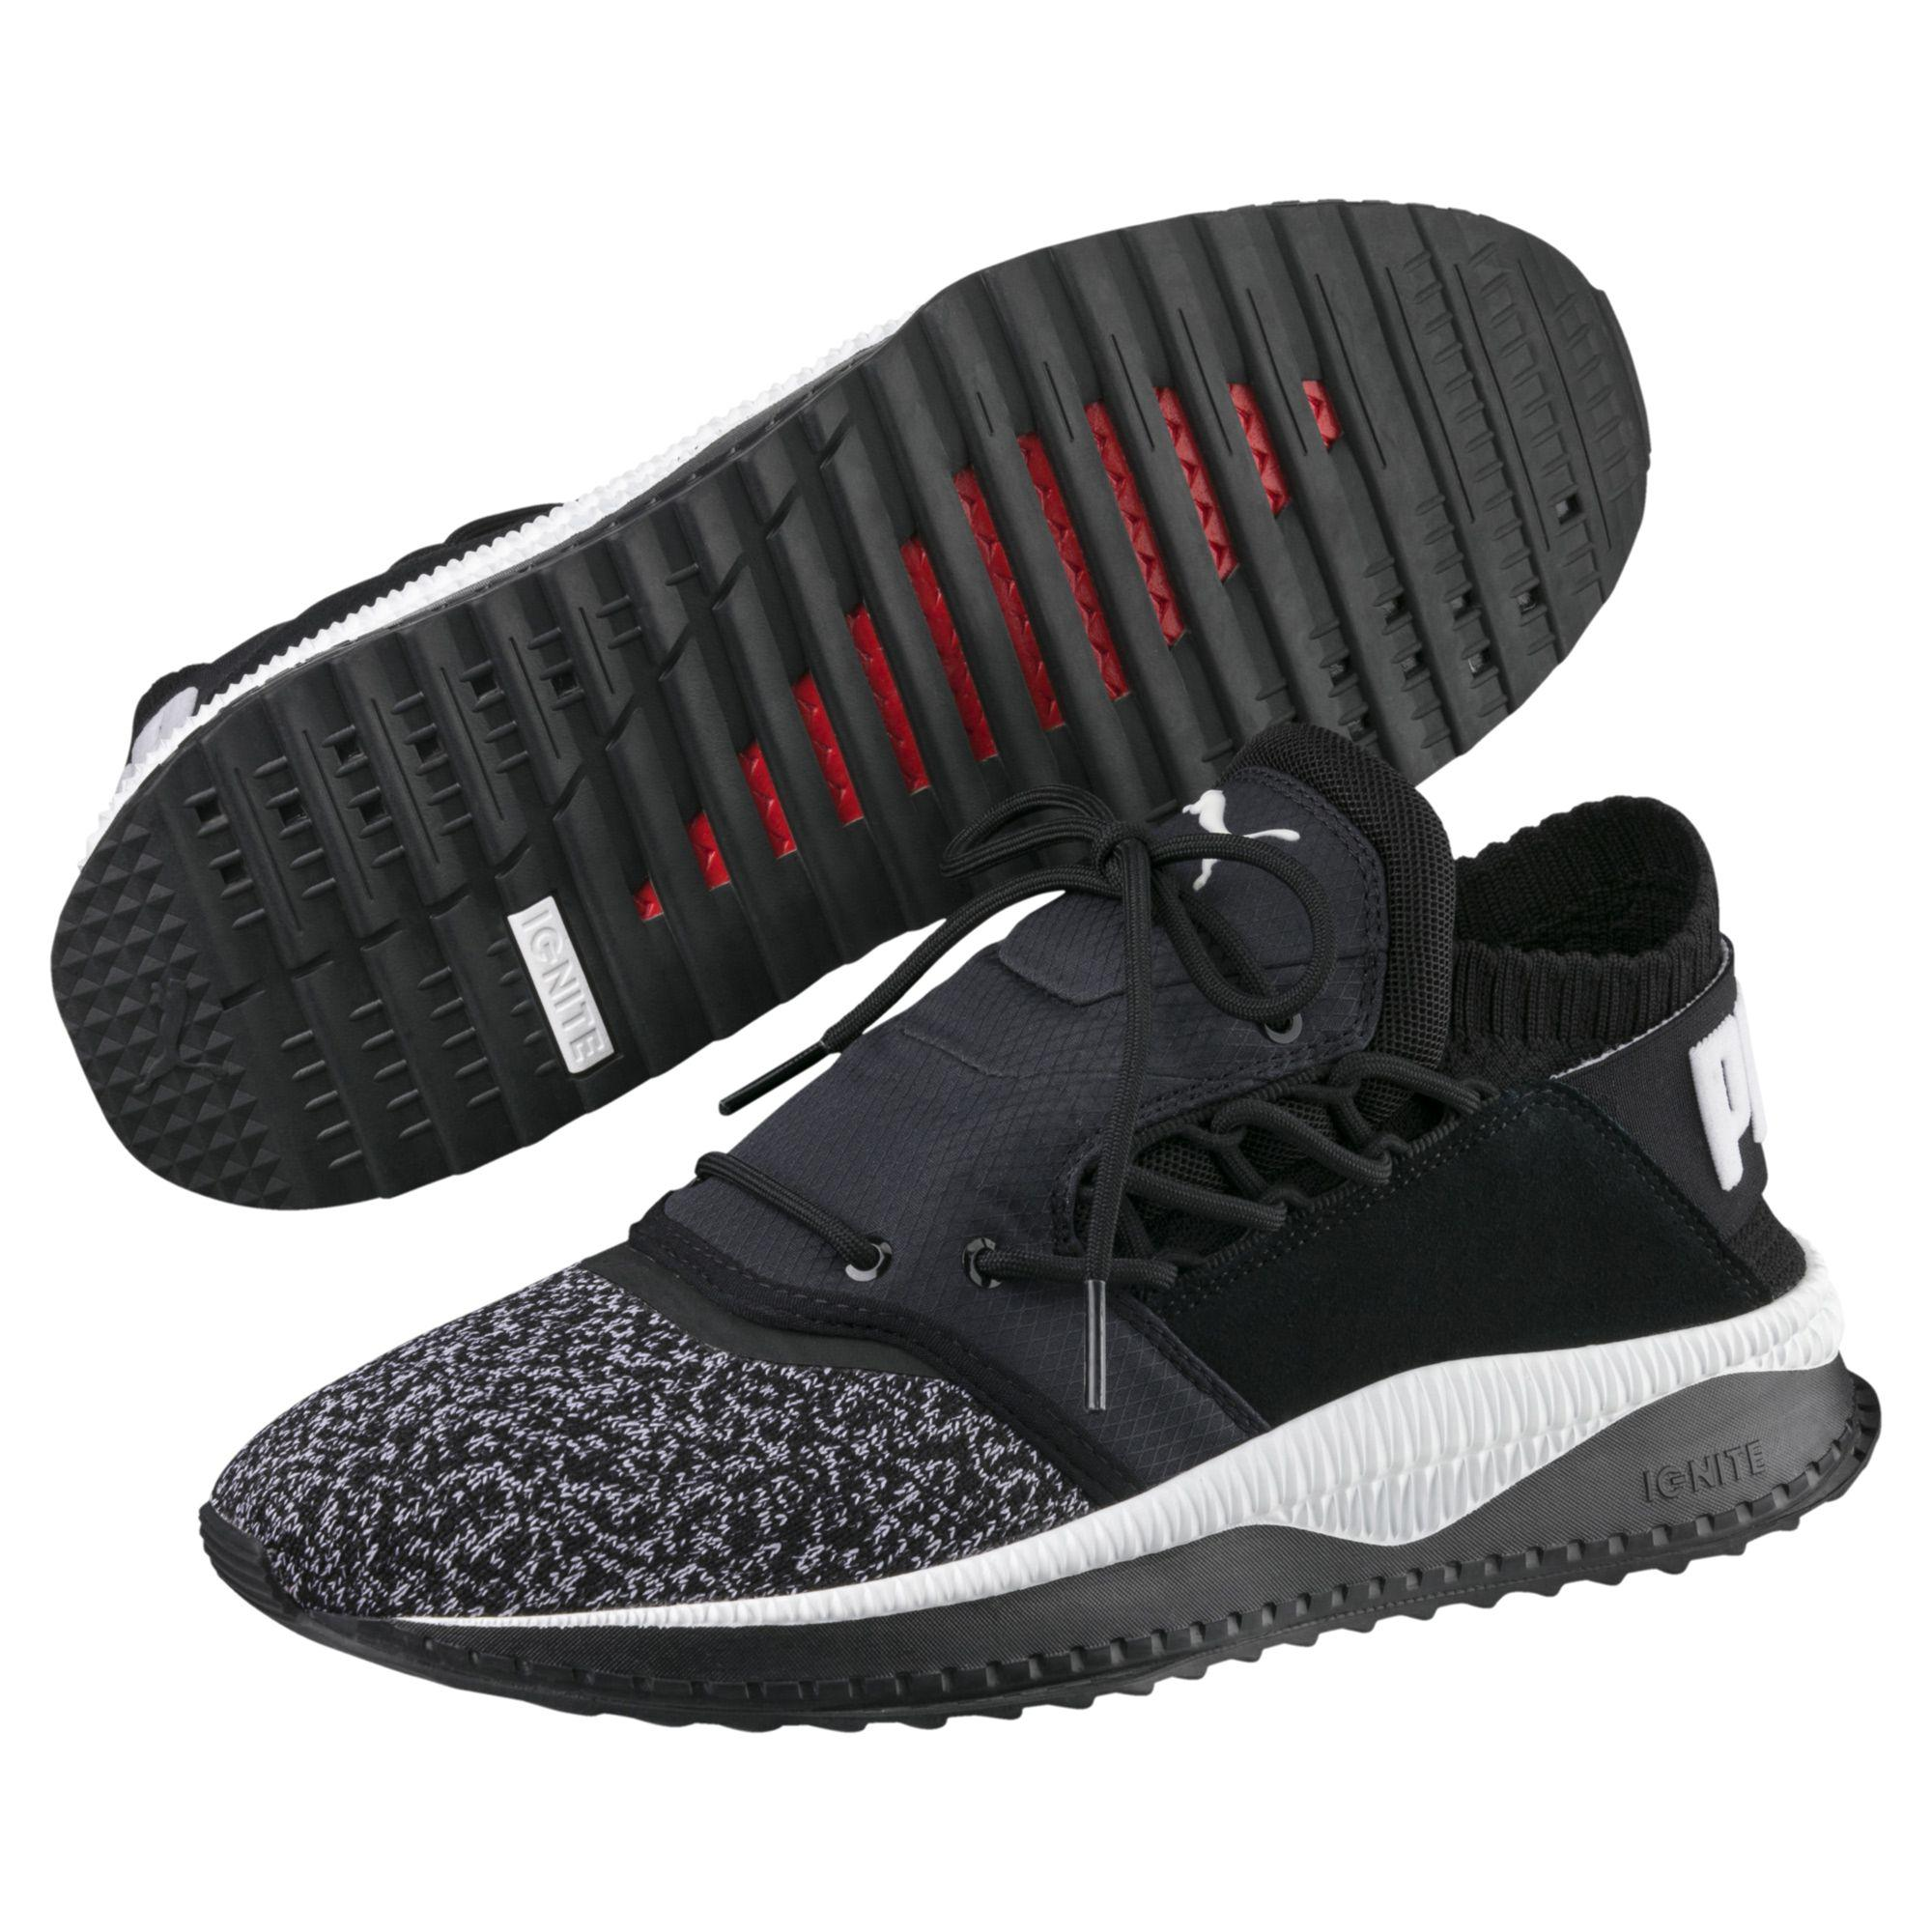 Lyst - PUMA Tsugi Shinsei Nocturnal Sneaker in Black for Men 339ee486d